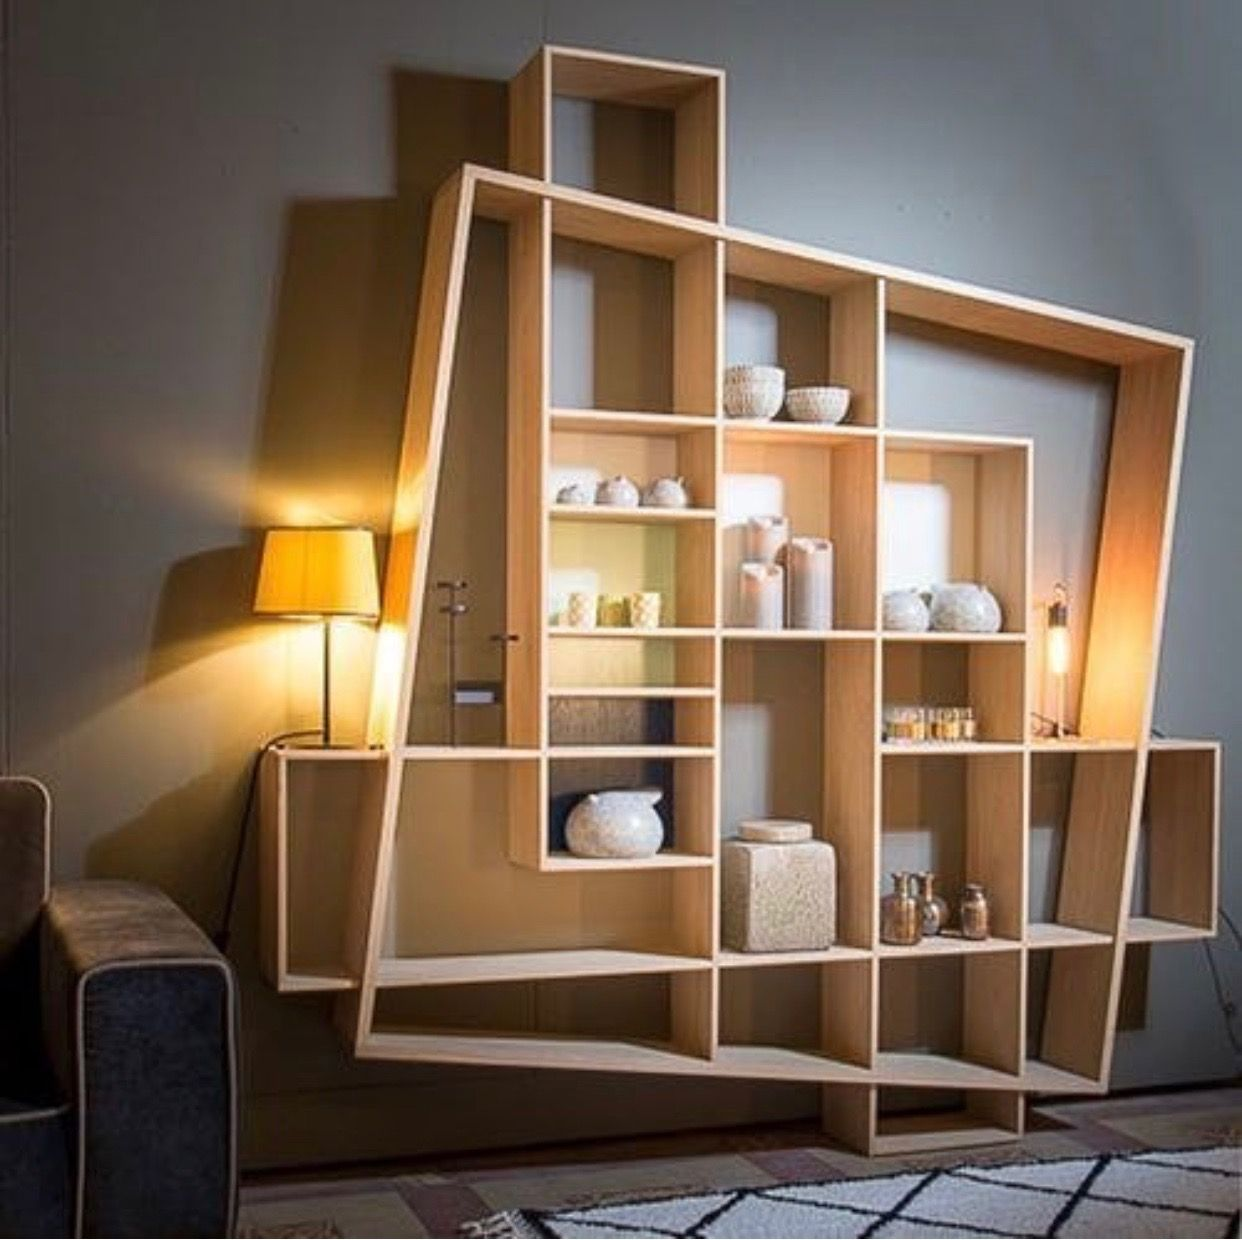 Pin By Jen Kohl On Cool Home - Cabinets And Shelves | Modern